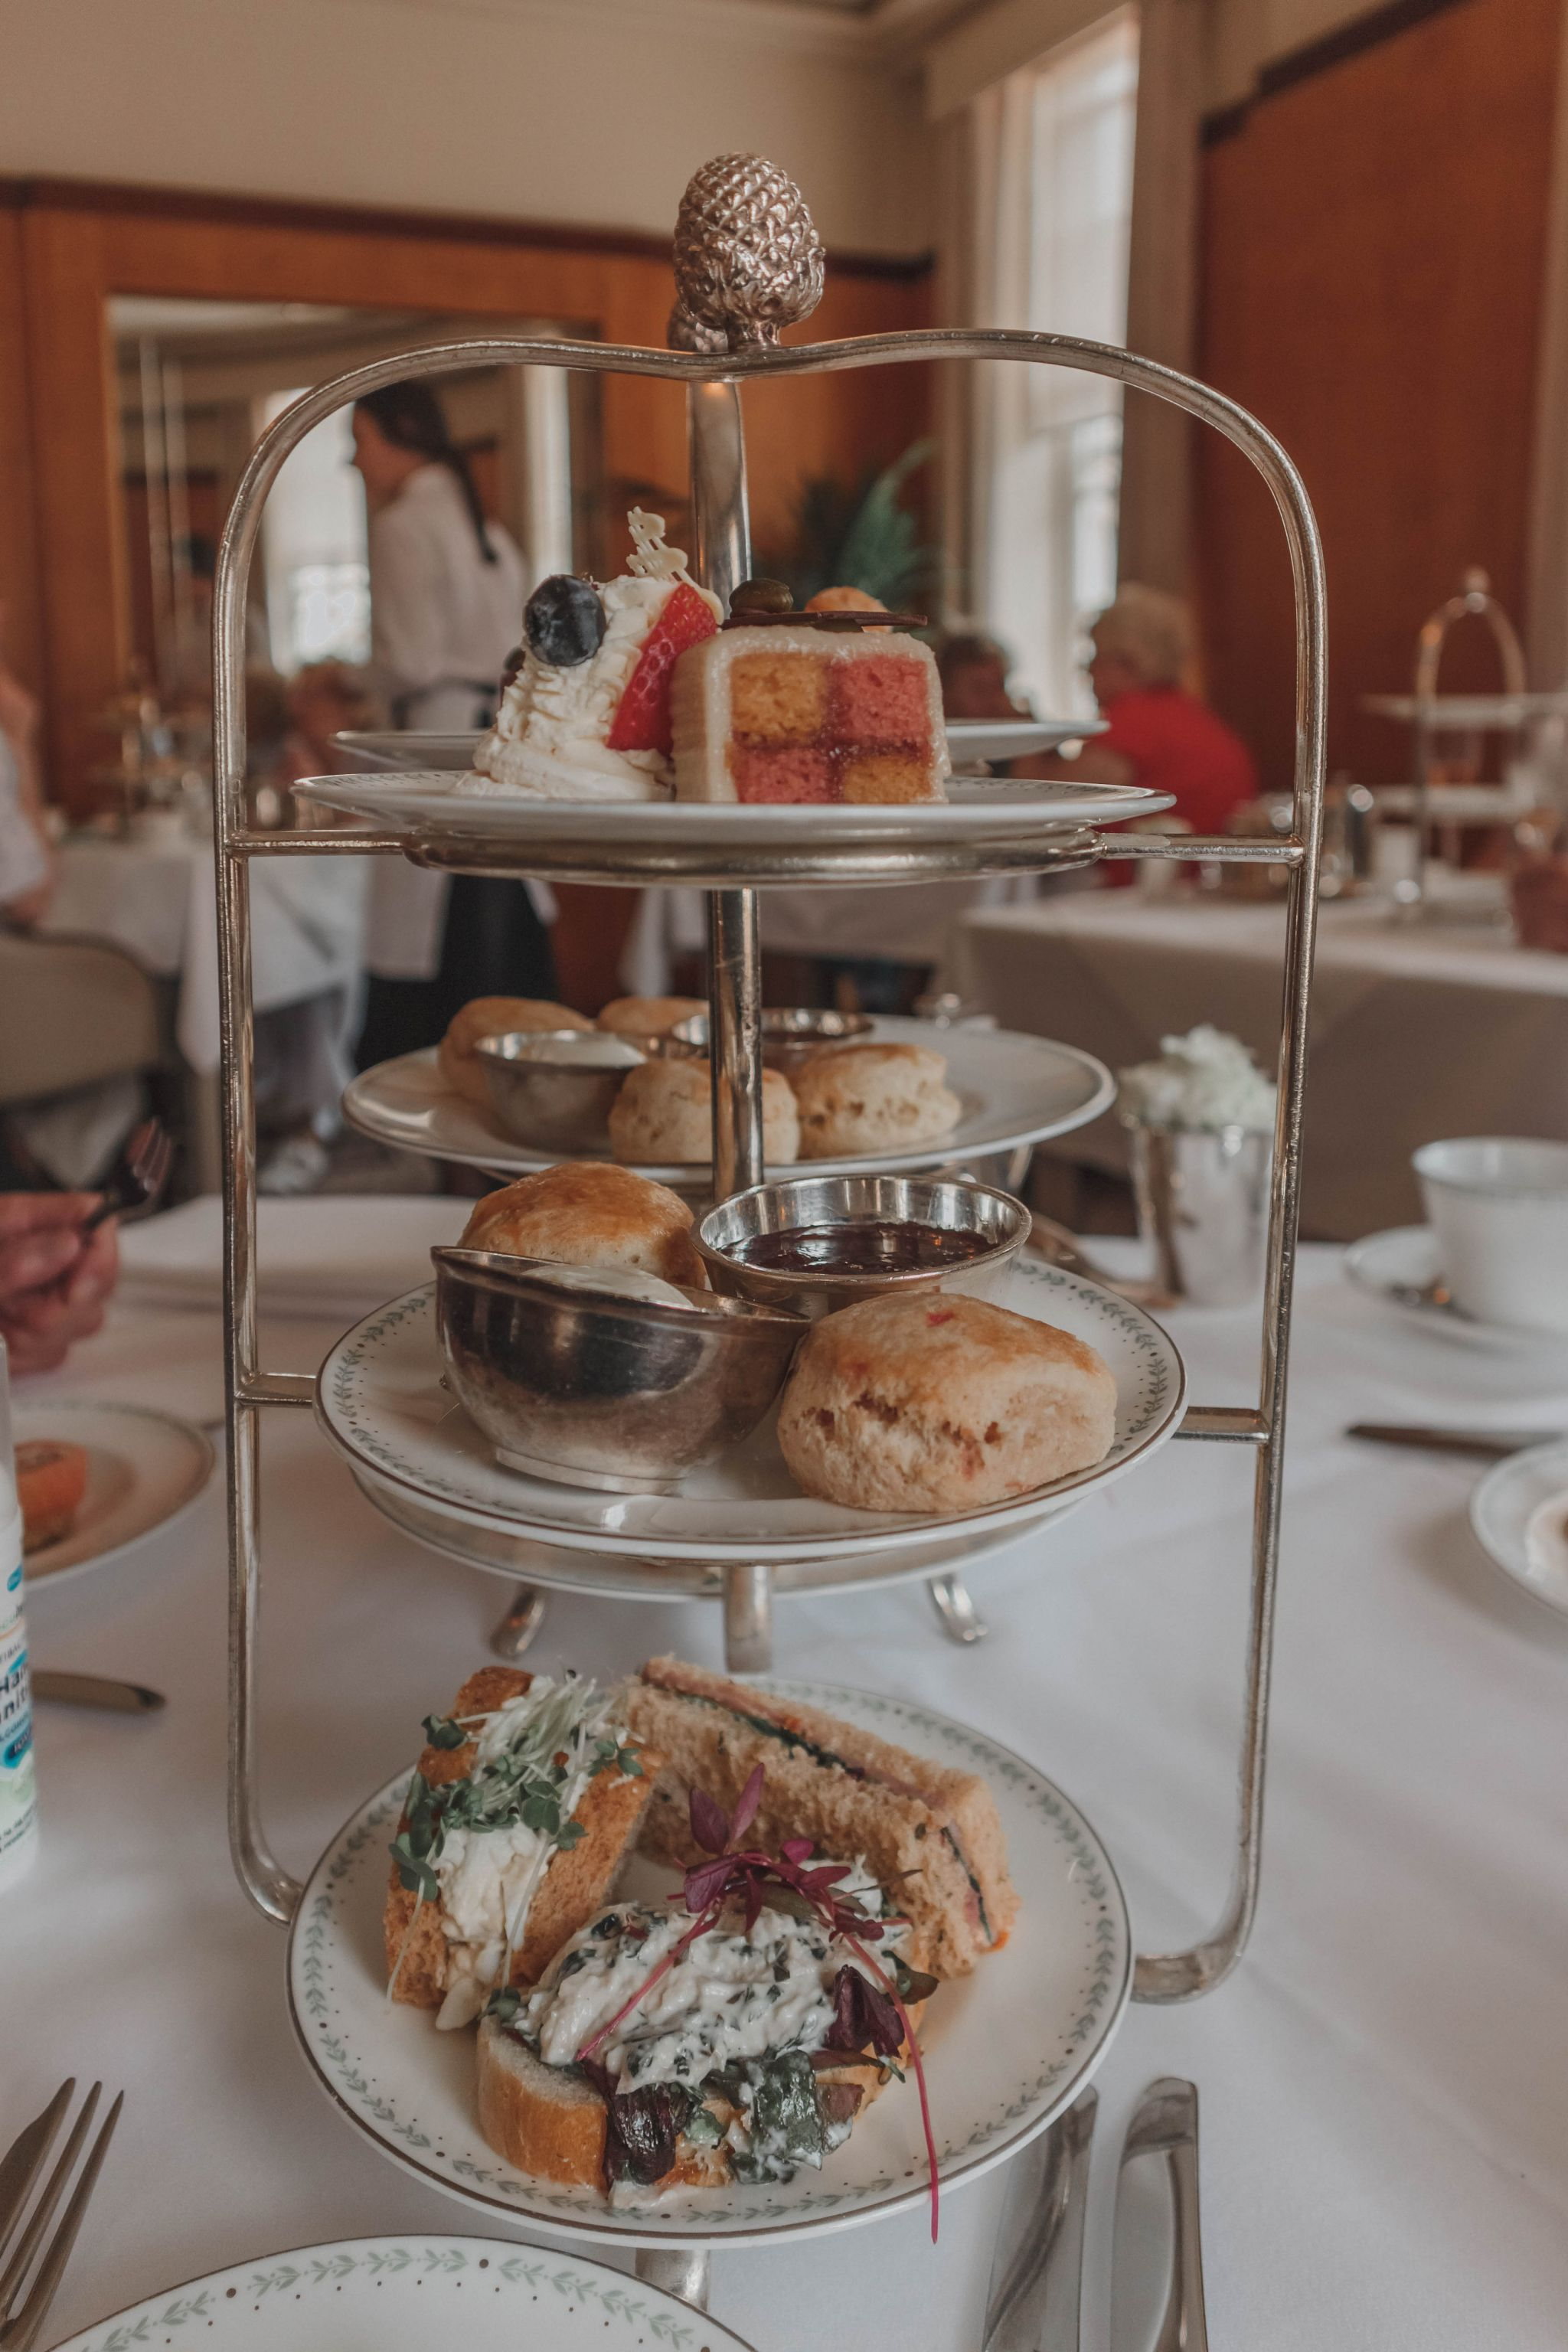 Lady Betty Afternoon Tea, 2018, Bettys, York, St Helens Square, St., Afternoon Tea in England, Yorkshire, York, UK, Travel, Tourism, North England, Food, Sandwiches, Cakes, Scones, Belmont Room, Treat, Katie Writes, Katiebwrites, KatieWritesUK, ©Katiewrites.co.uk